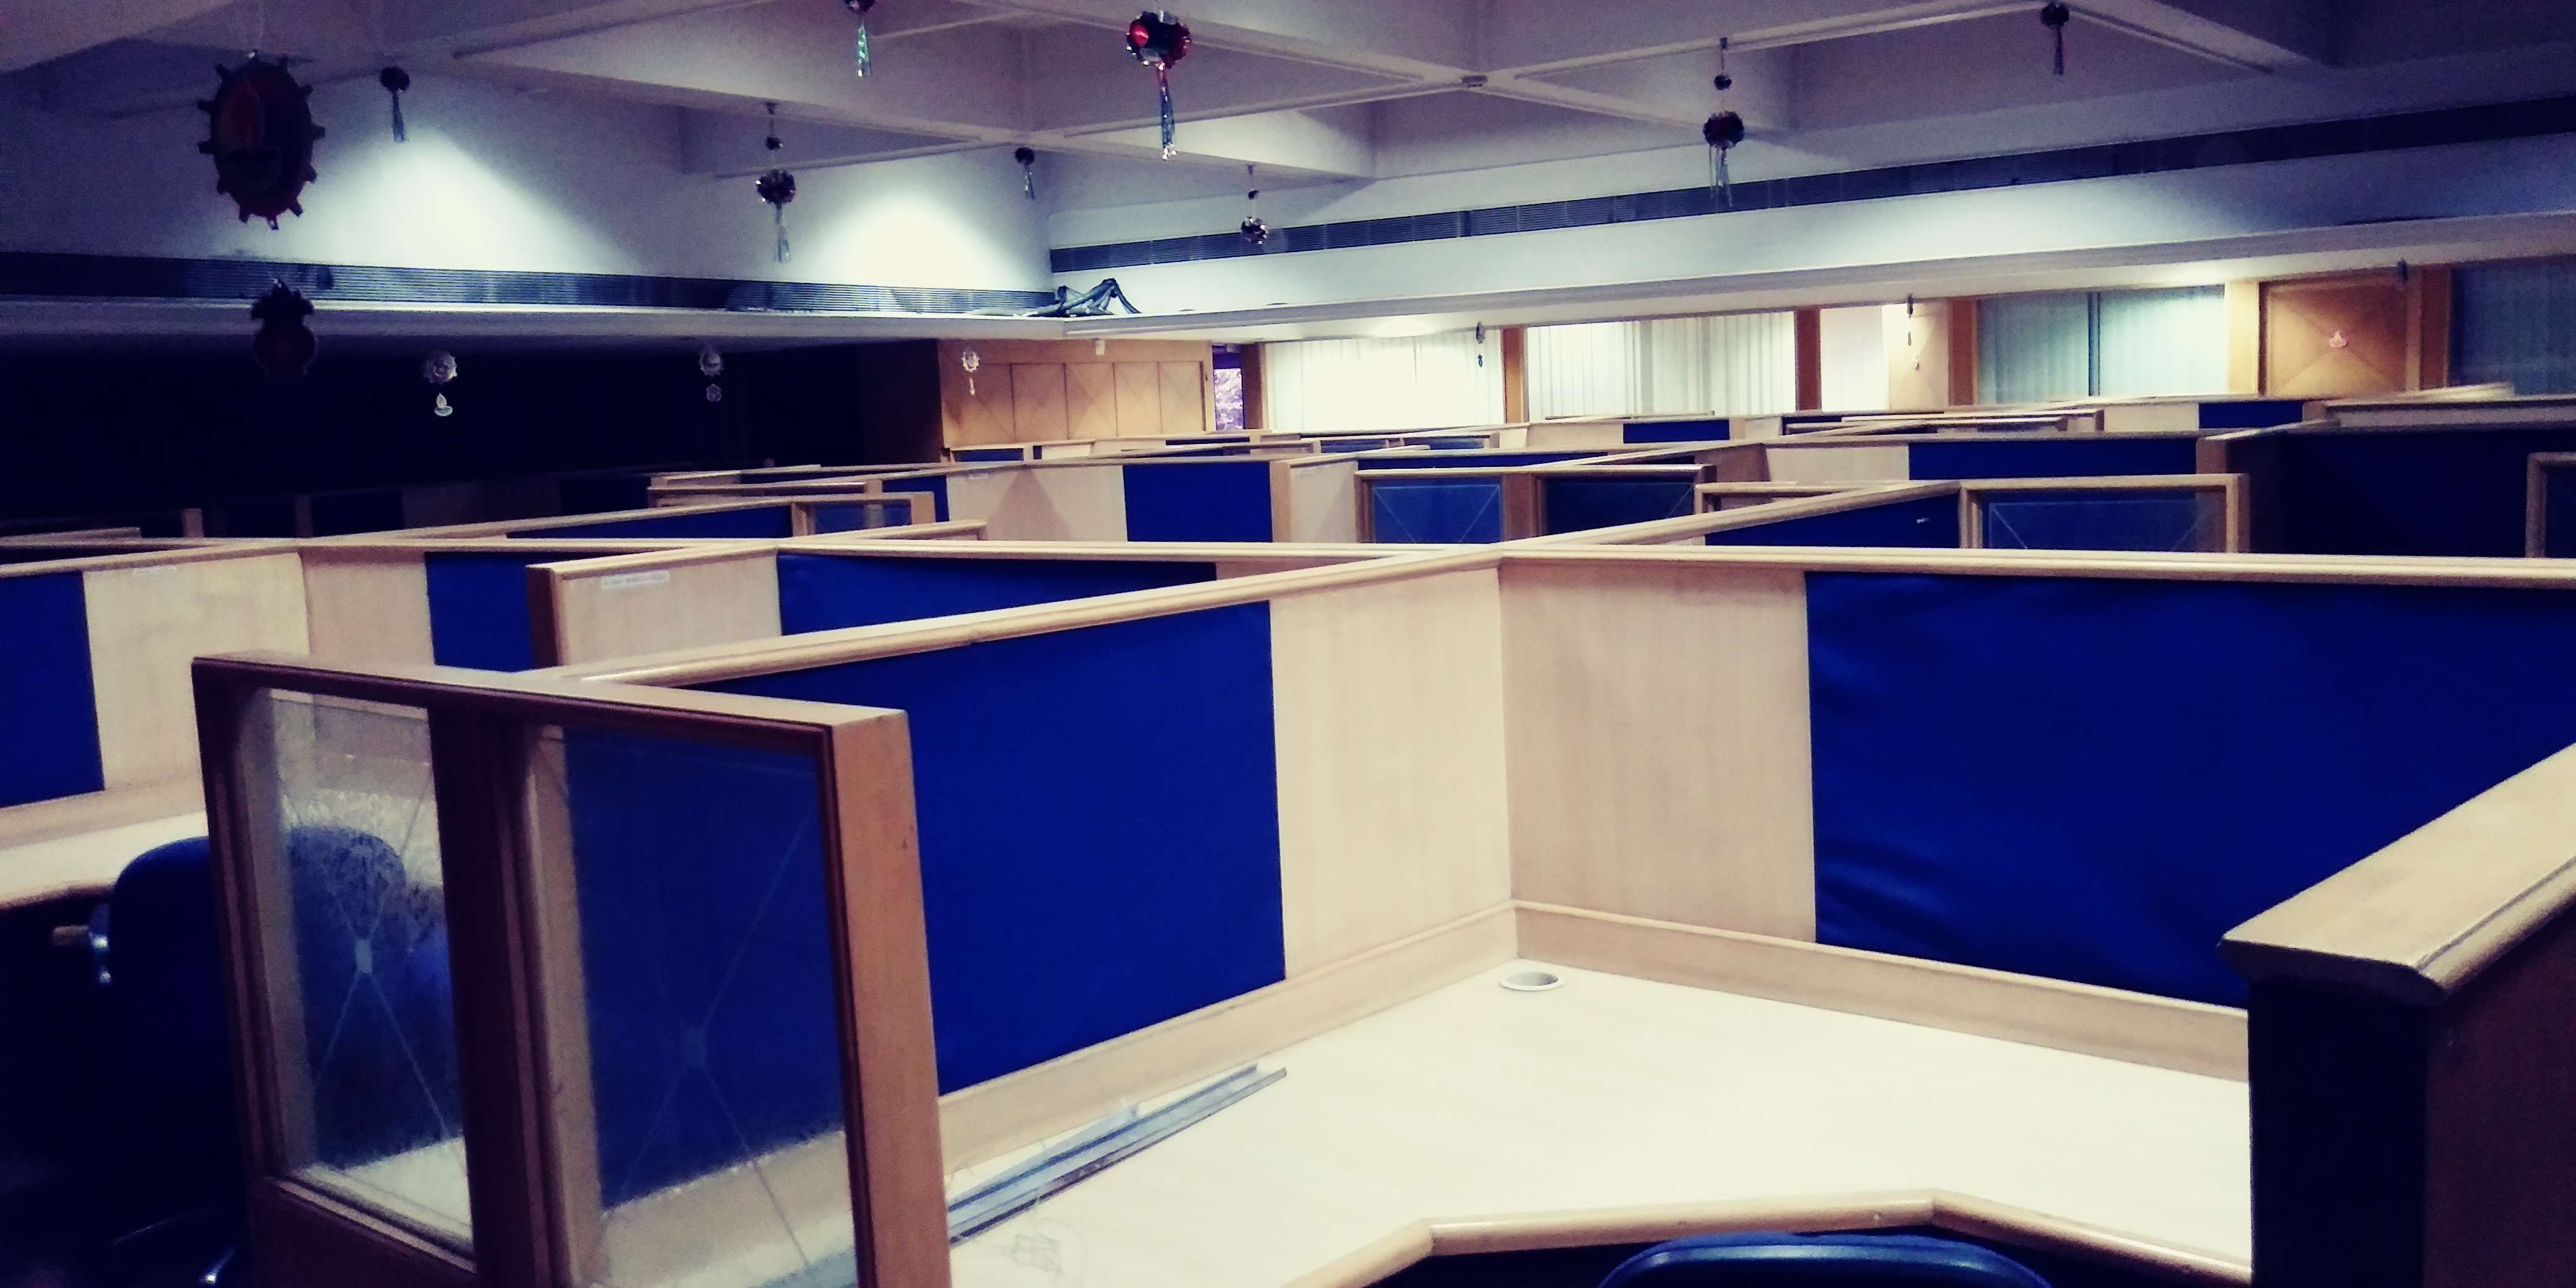 Office Space for Sale / Lease in HiTech City Hyderabad